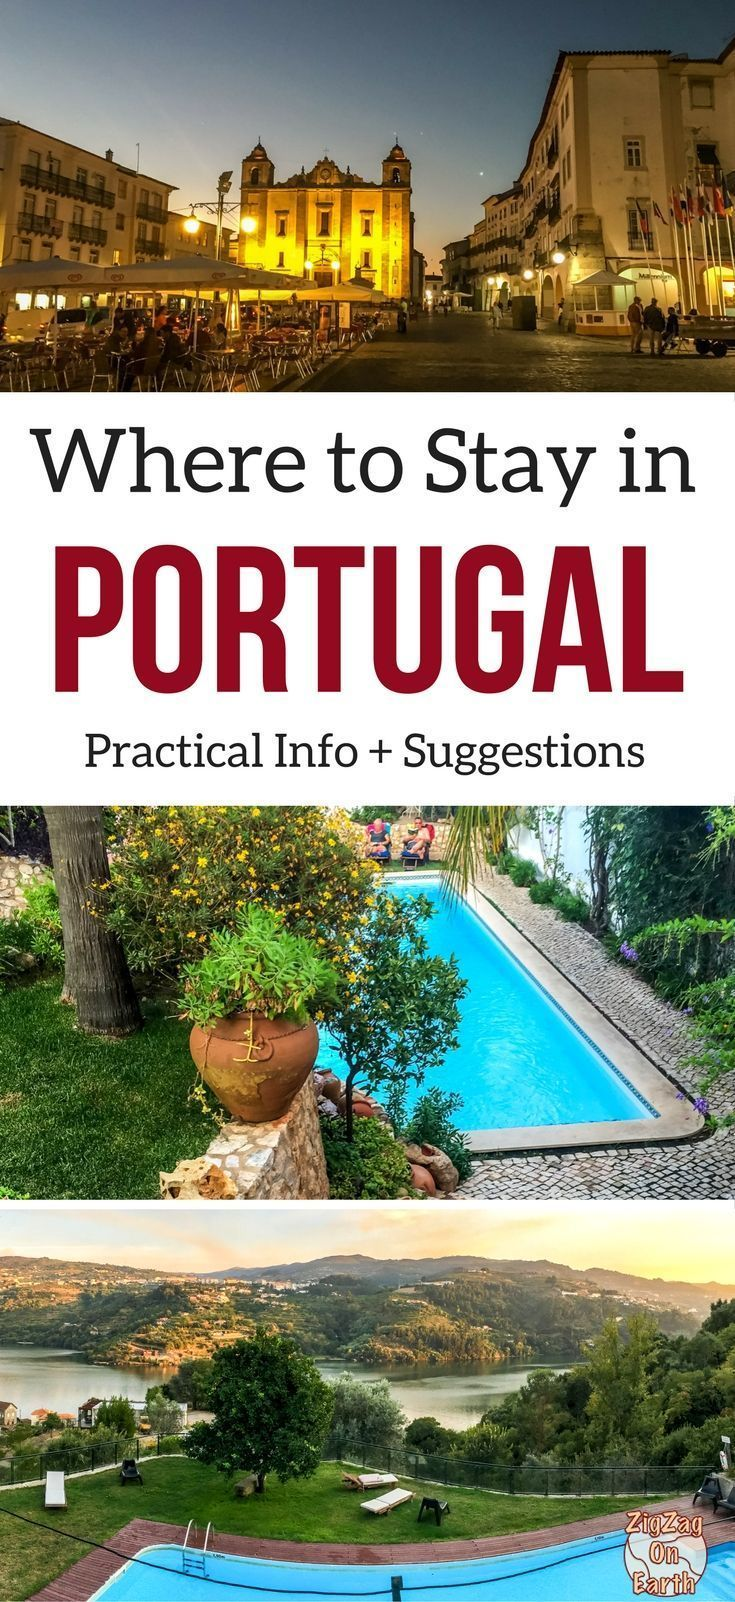 Portugal Travel Guide Practical Info And Suggestions For Your Accommodations In Portugal Portugal Hotels And Locations Camping Andalusien Reisen Algarve